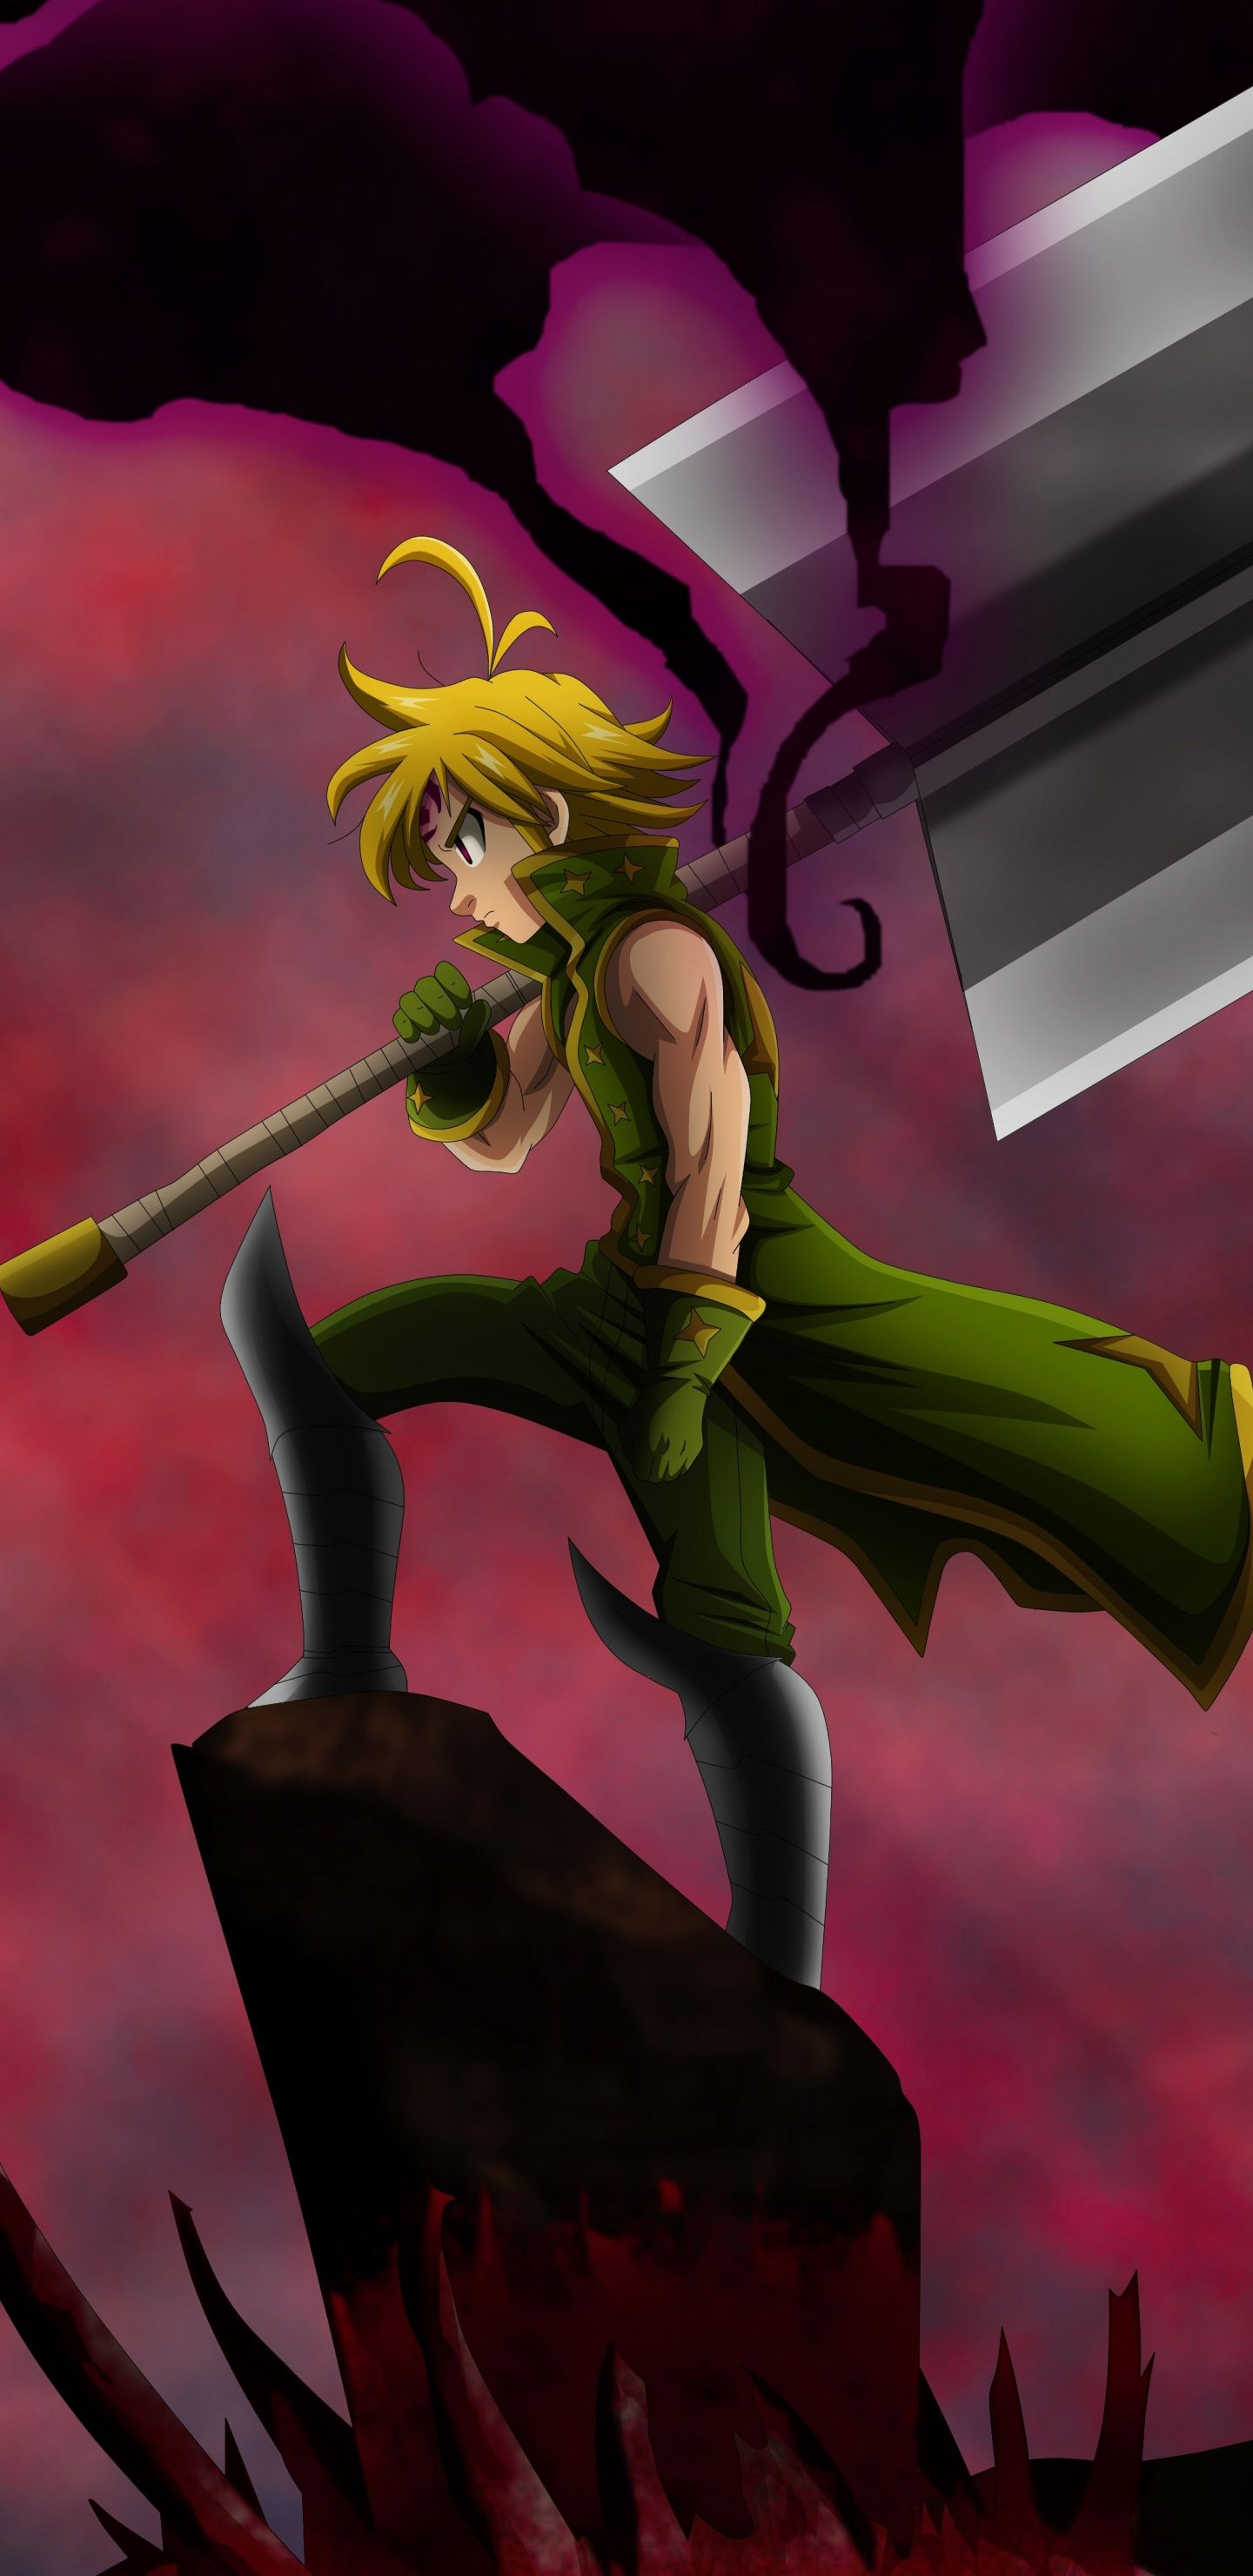 Download 1440x2960 wallpapers meliodas, the seven deadly sins